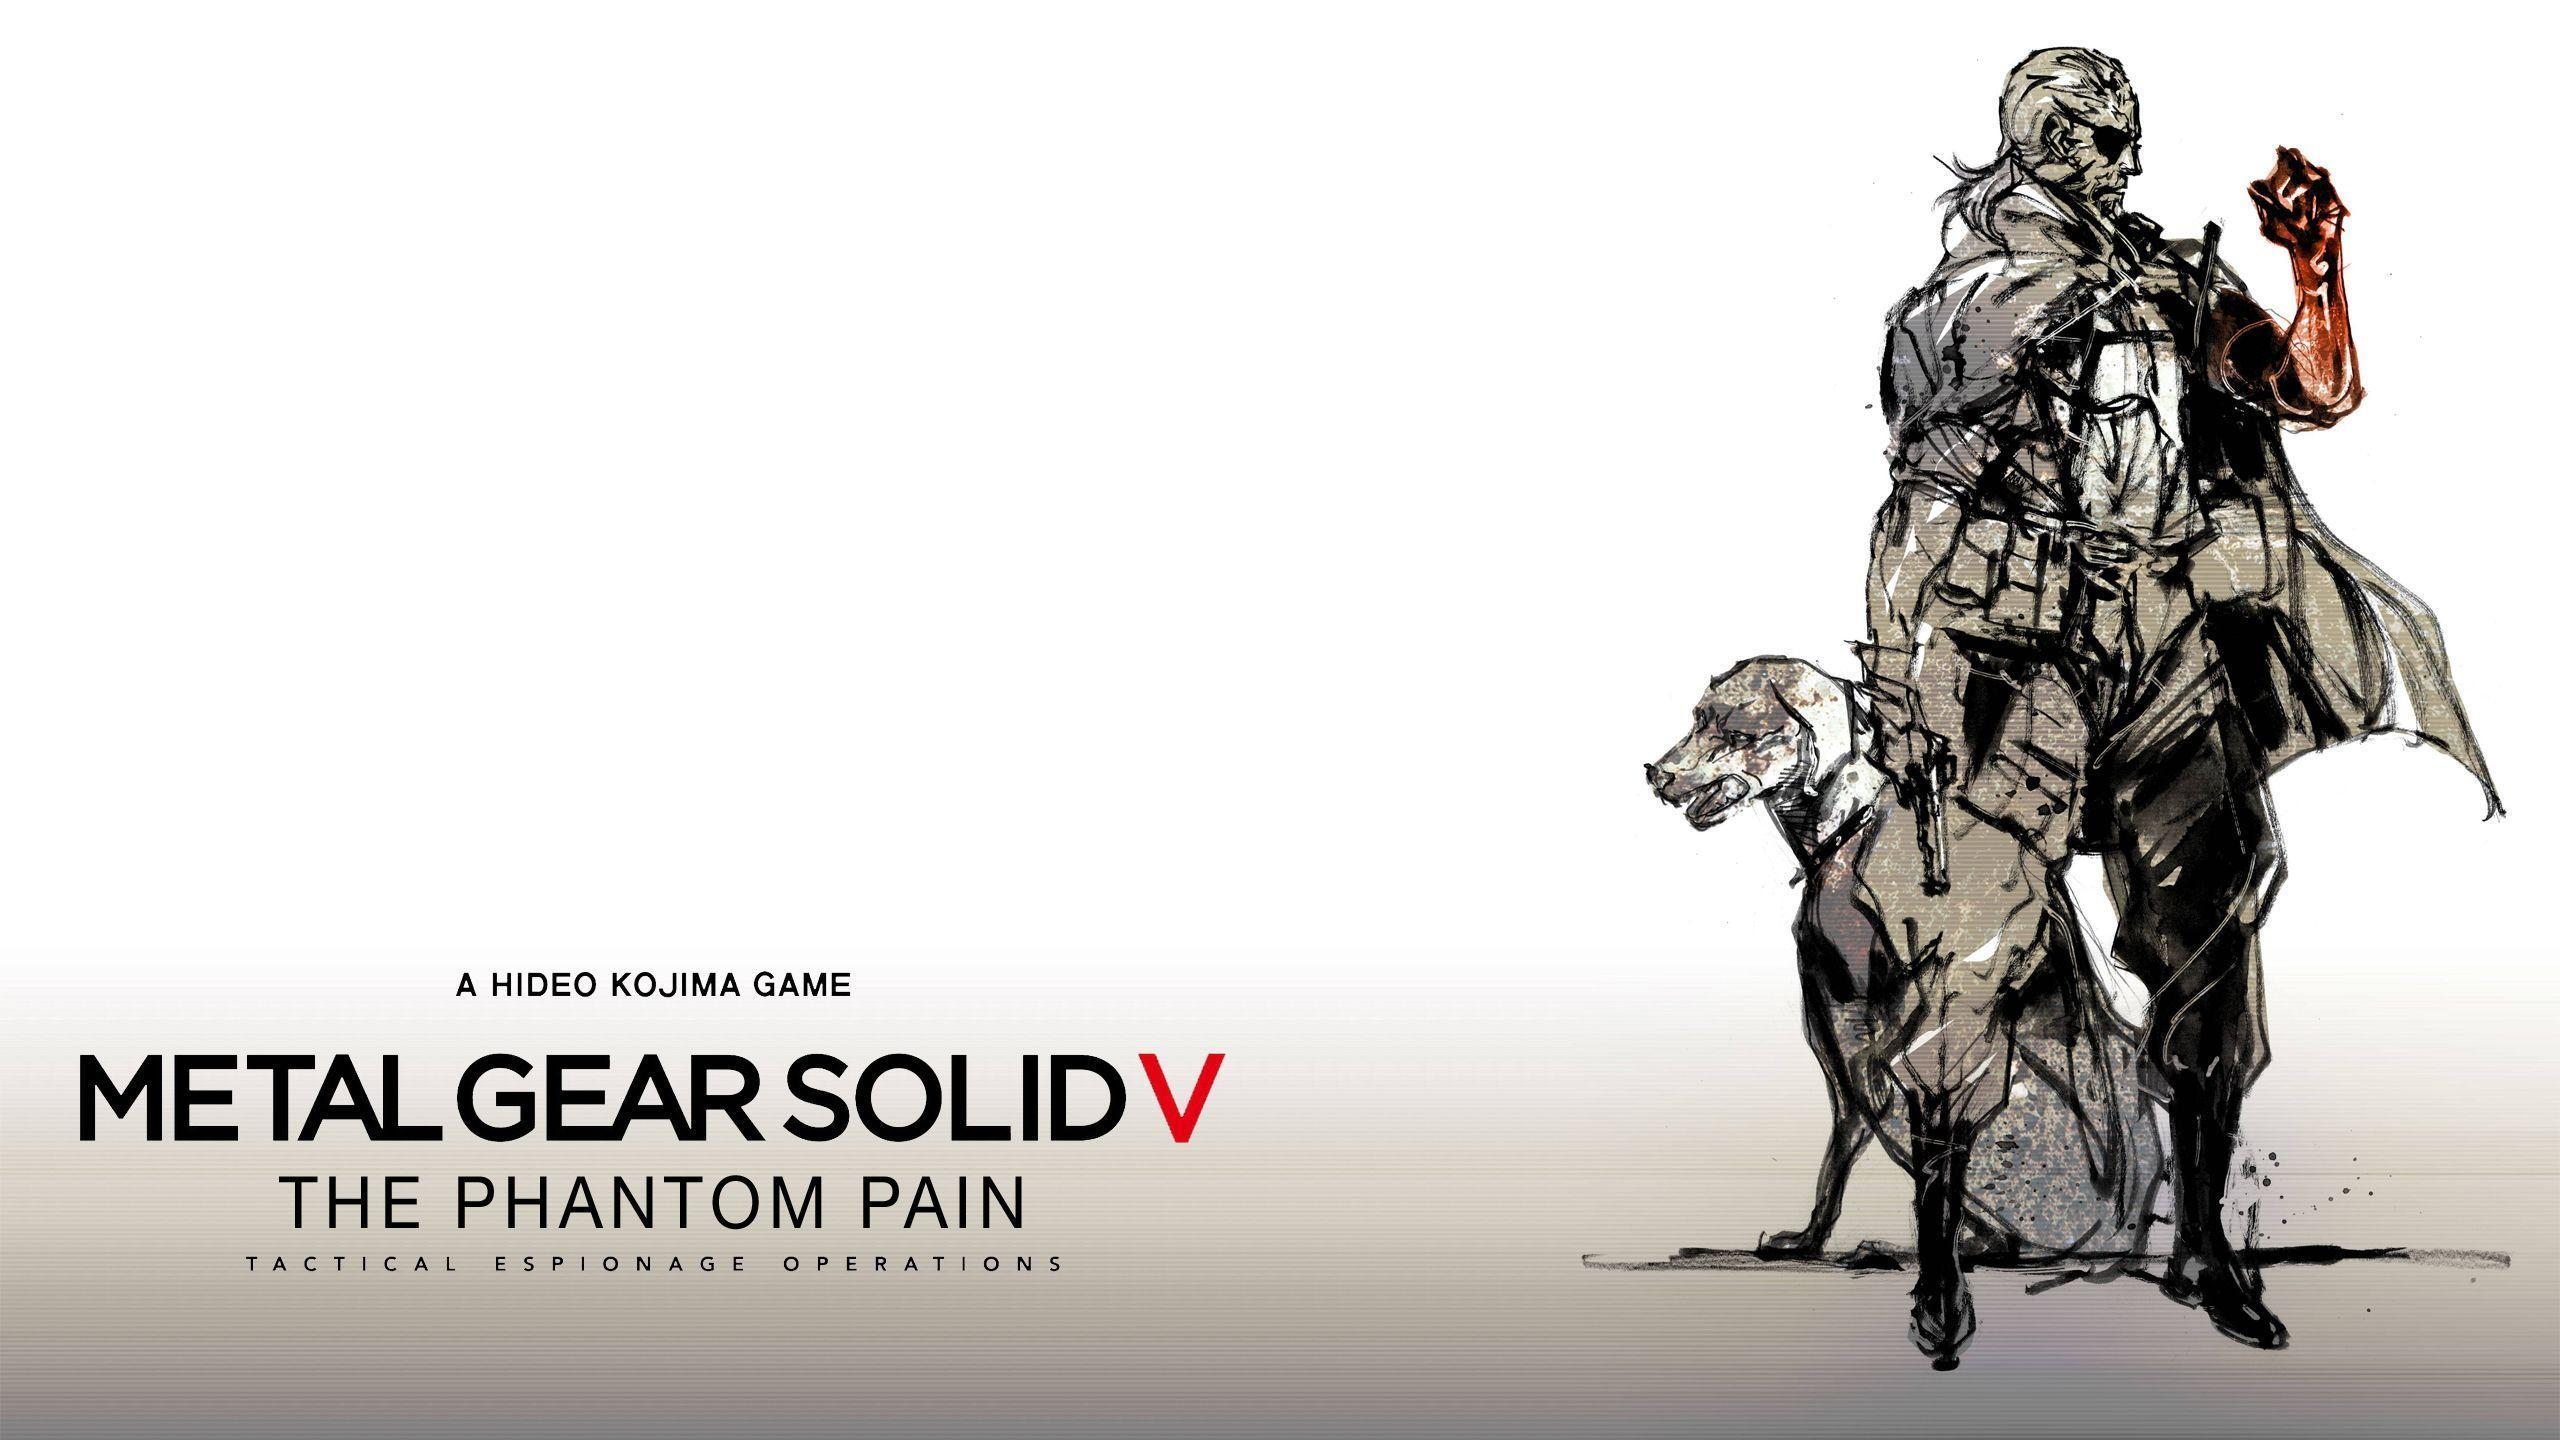 Metal Gear Solid V: The Phantom Pain PC Version Download